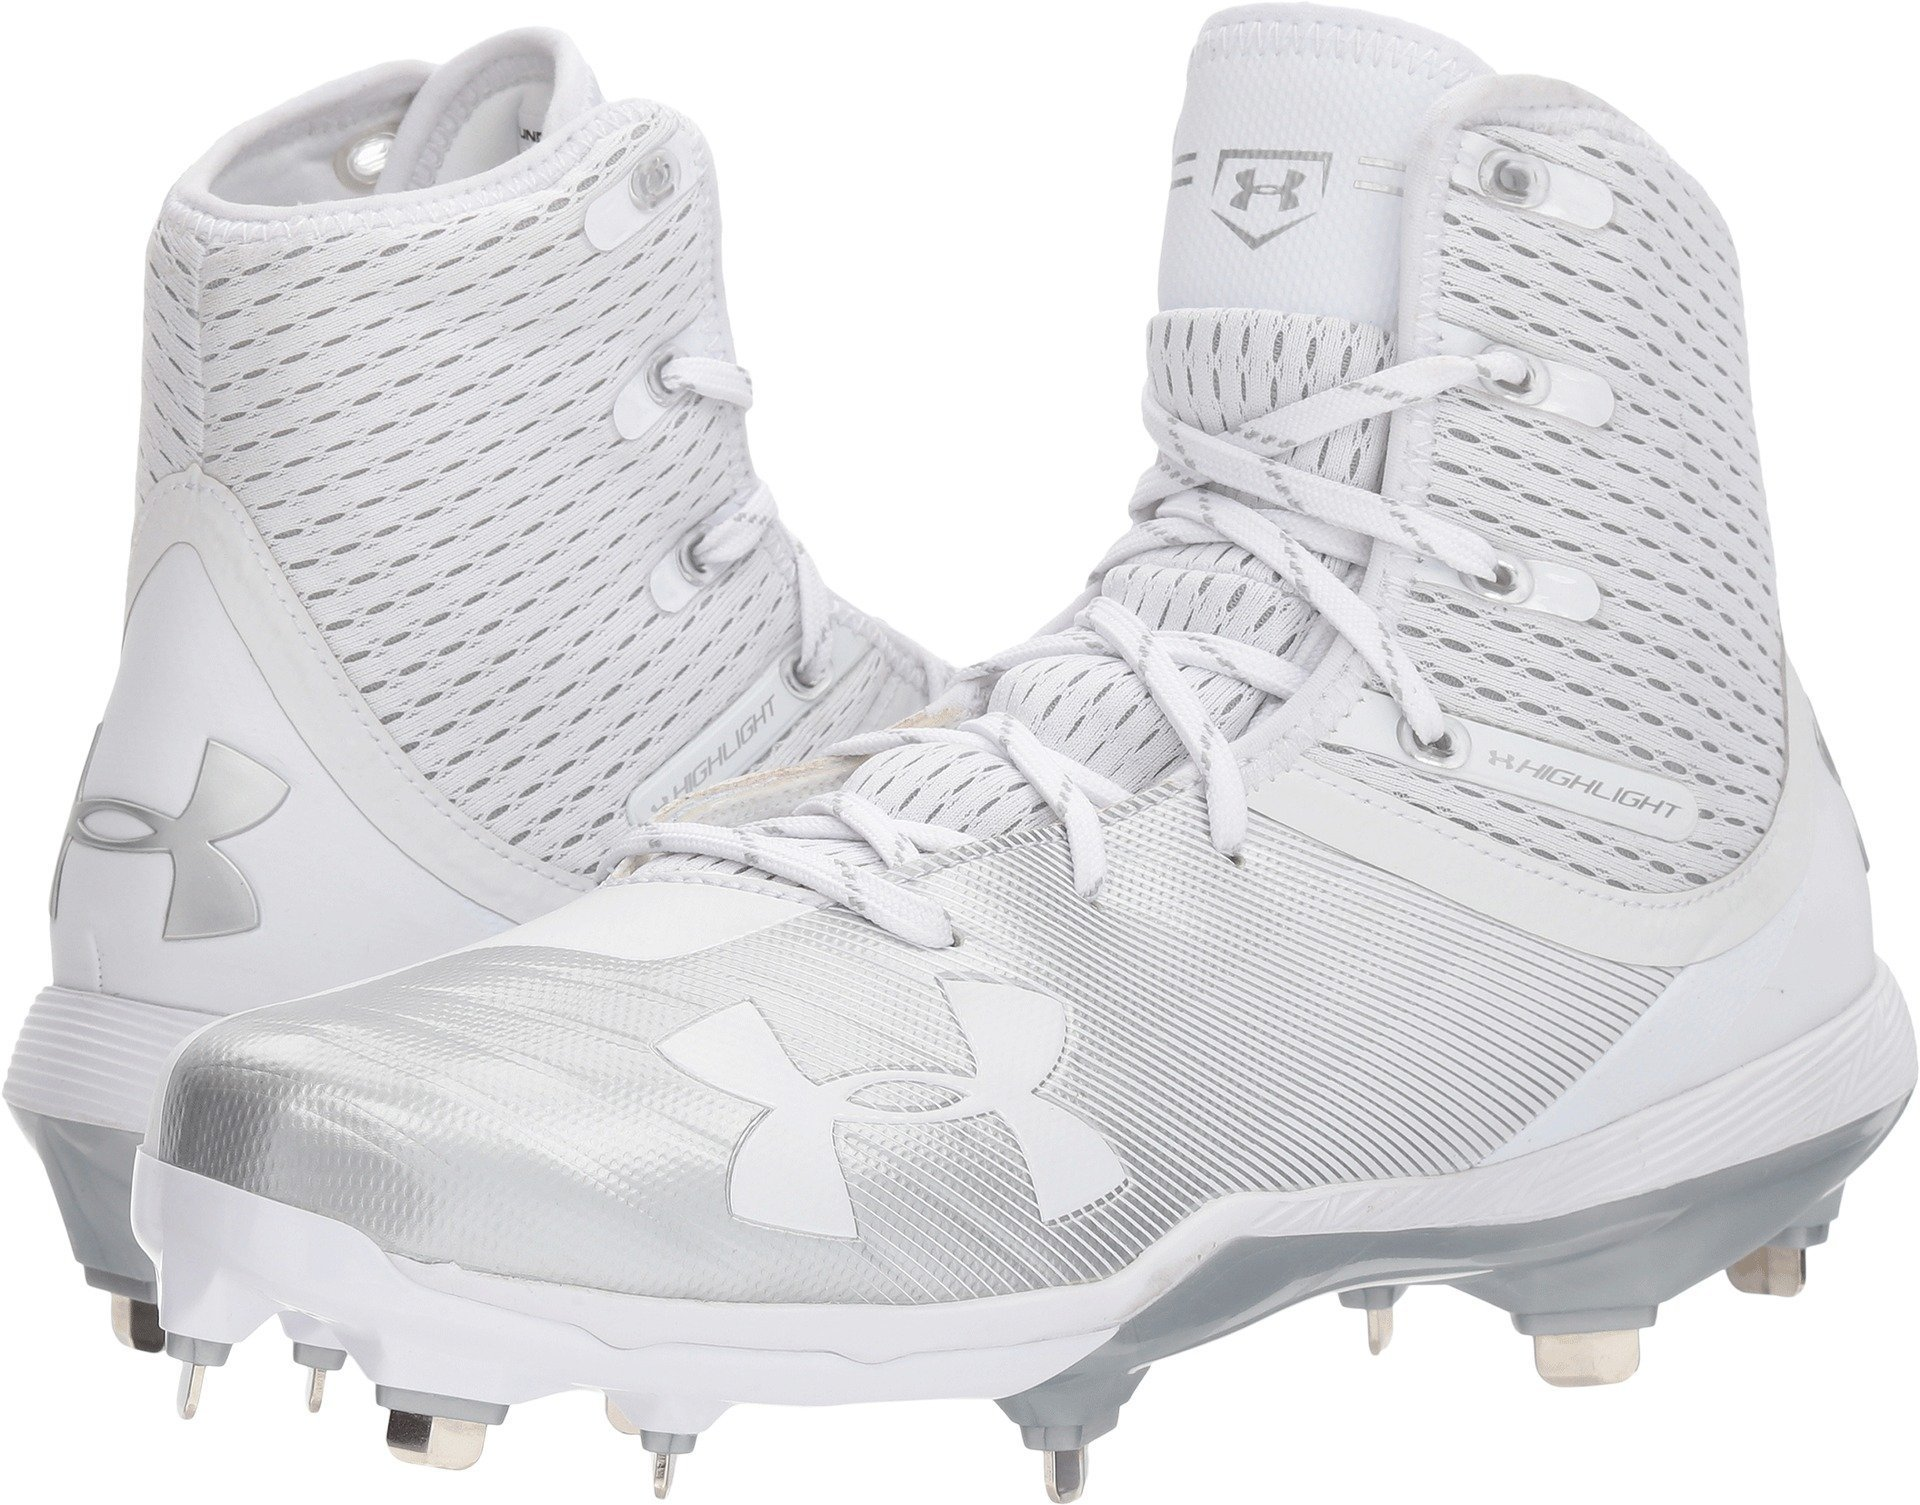 Under Armour Men's Highlight Yard Diamondtips Baseball Shoe, White (100)/White, 11